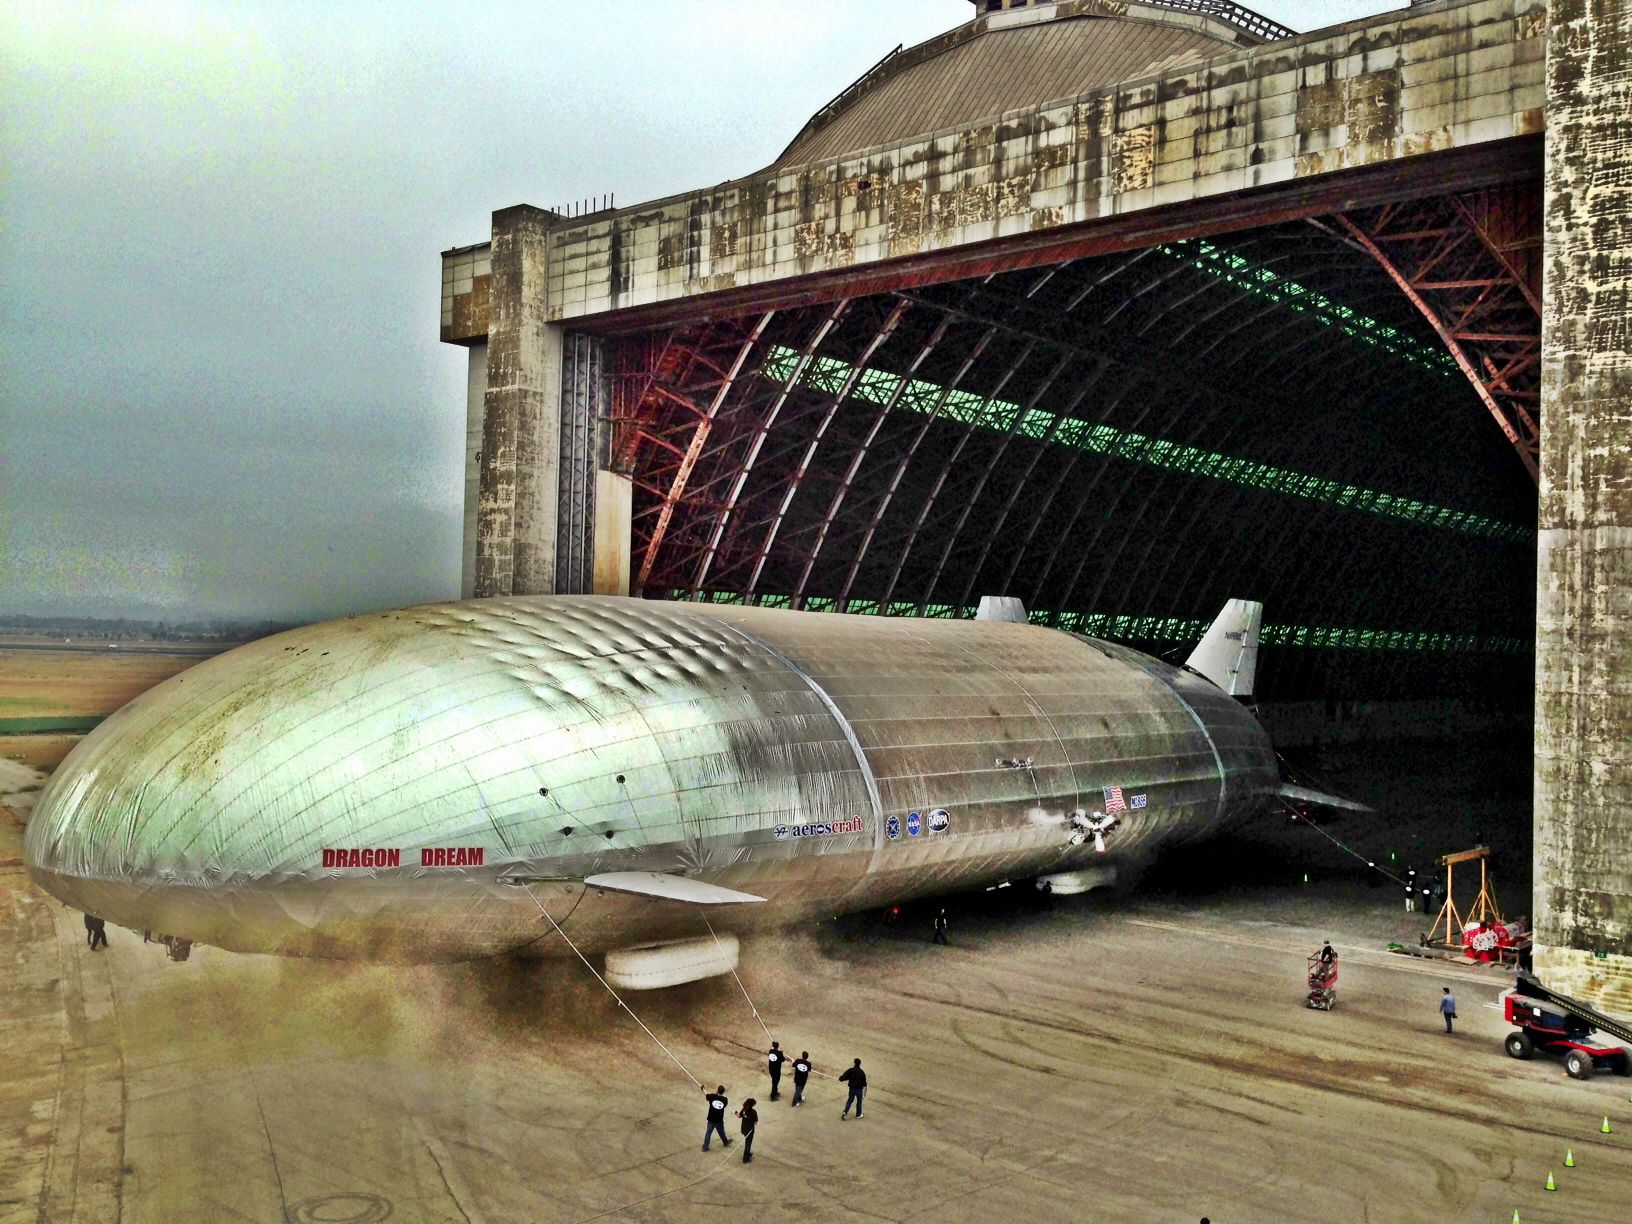 Aeroscraft Shows Off Its Giant Airship Popular Science